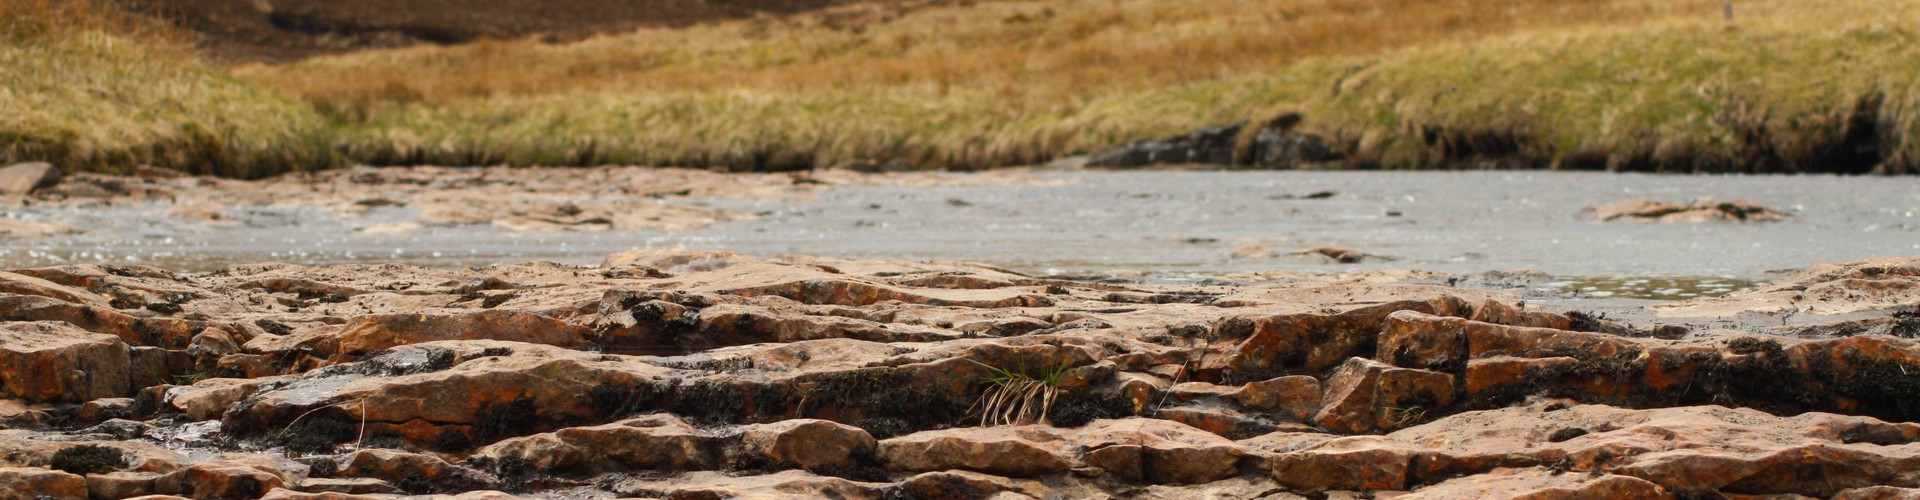 Dry river bed in a peat upland in Northern England (Credit: Catherine Moody, distributed via imaggeo.egu.eu)